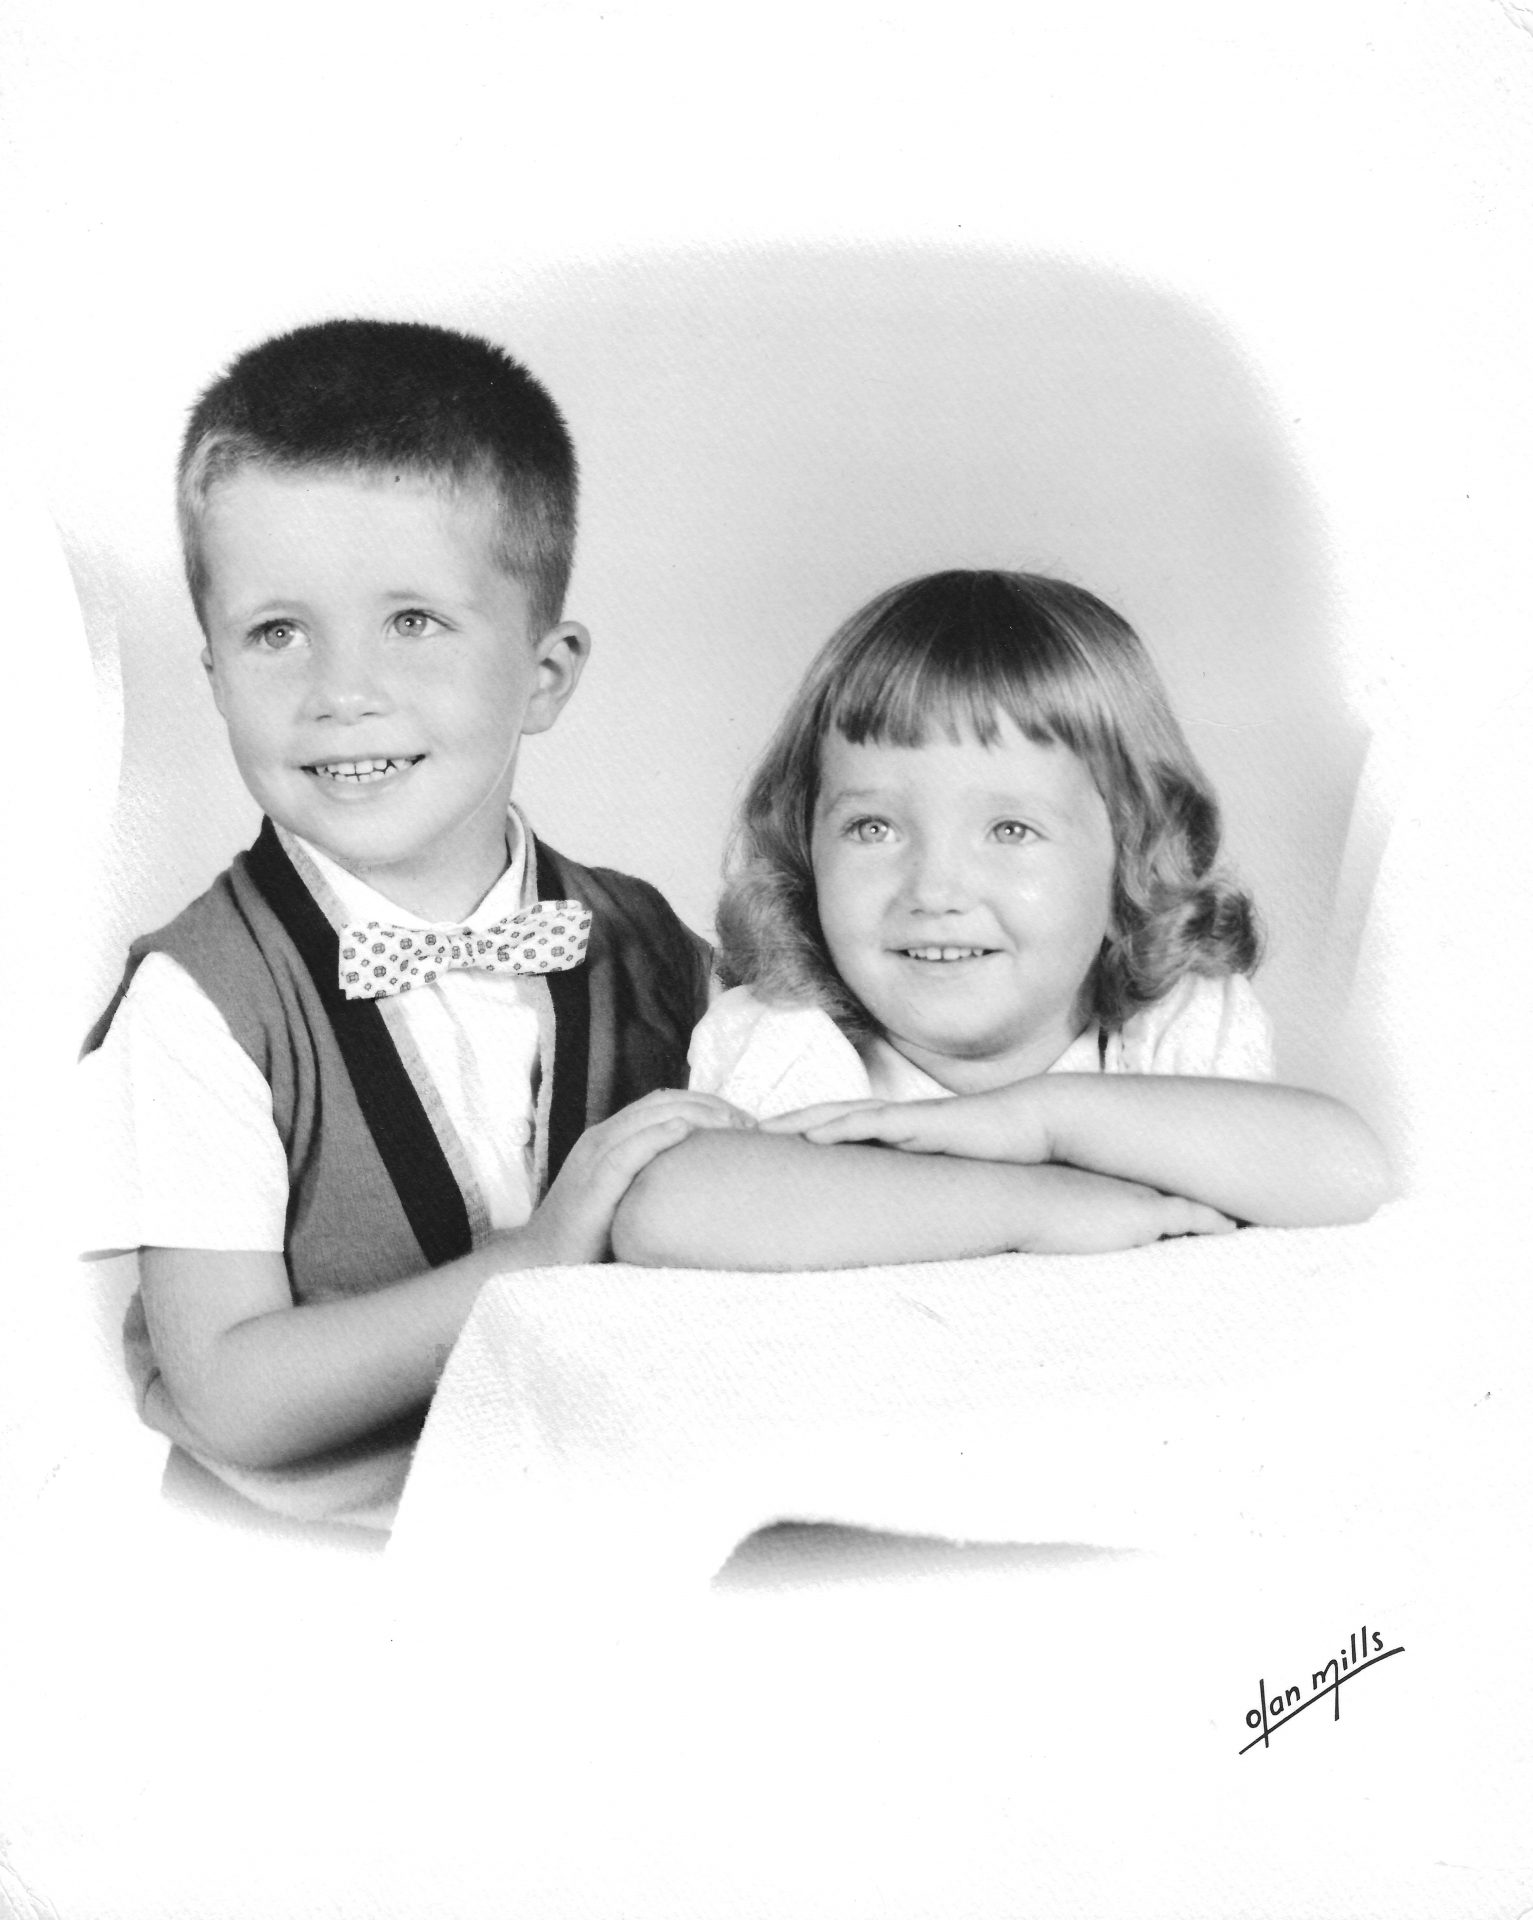 Butch and sister Pam as children